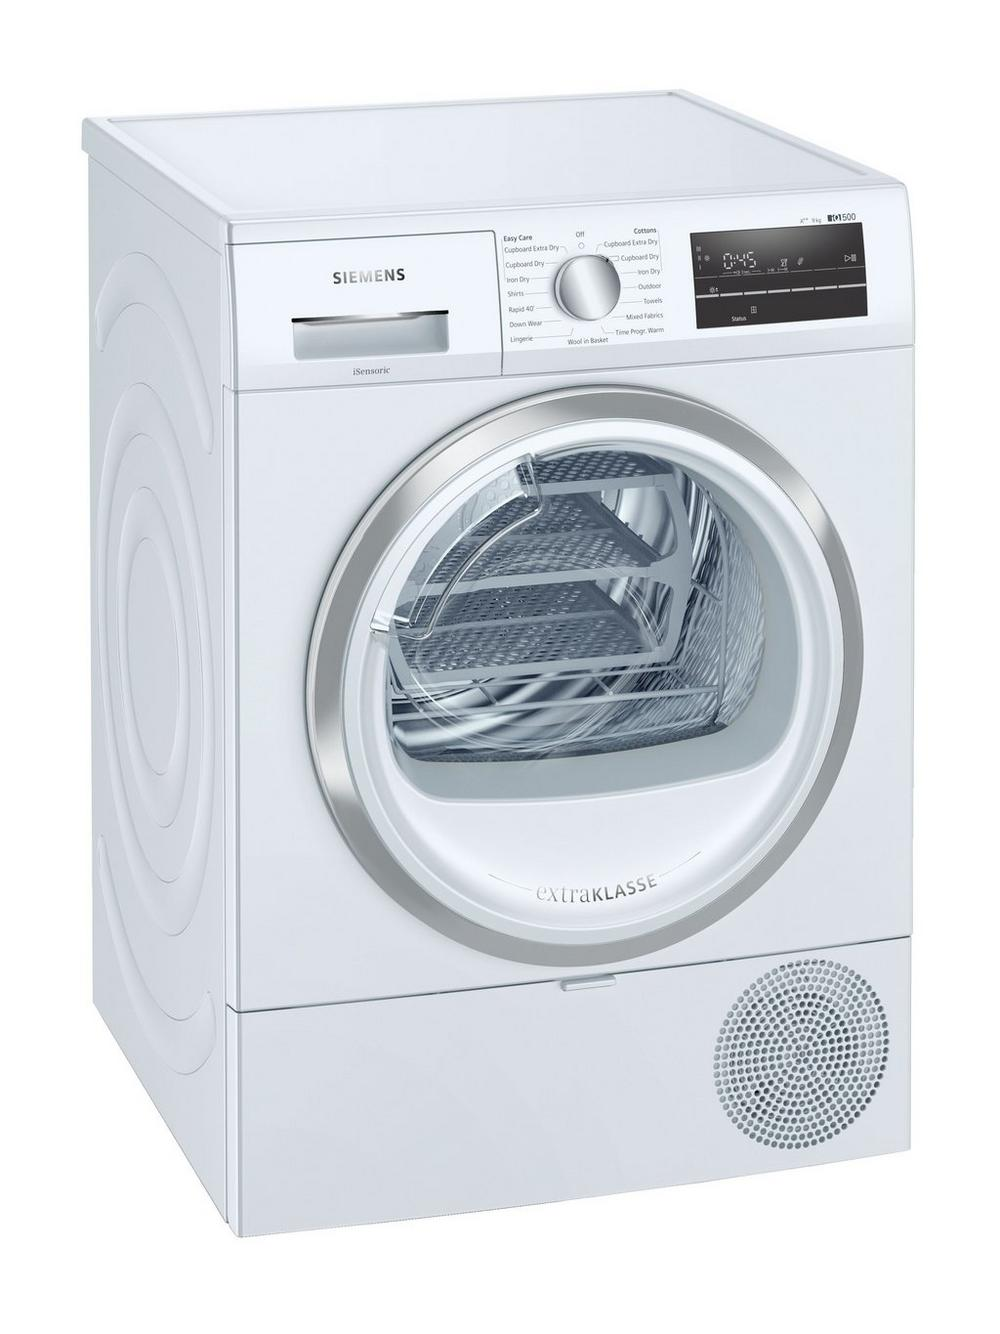 Siemens WT47RT90GB 9kg iQ500 Heat Pump Tumble Dryer - White - A++ Energy